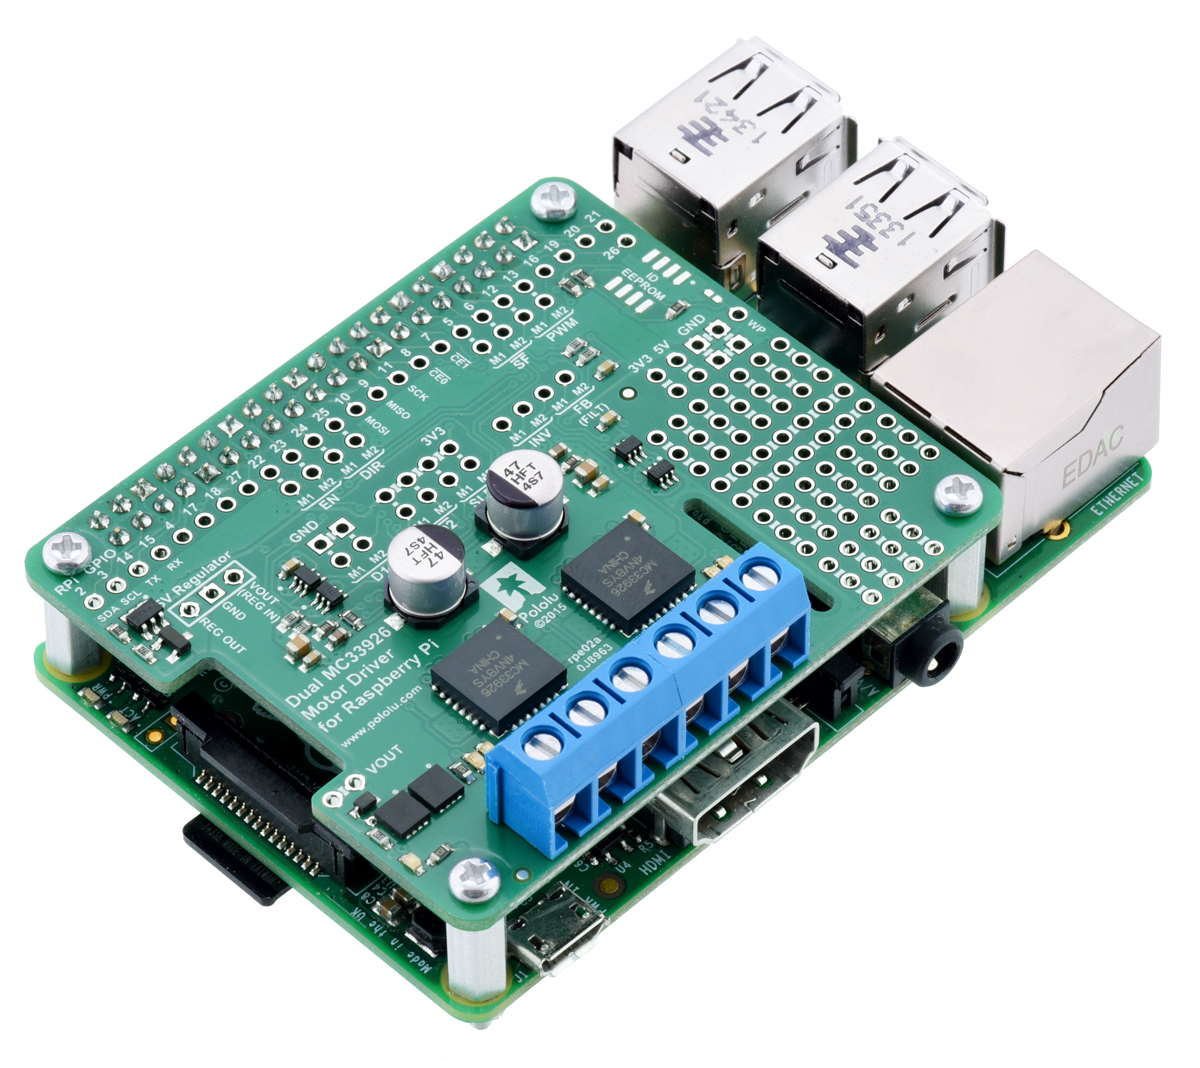 Pololu New Product Dual Mc33926 Motor Driver For Raspberry Pi B Block Diagram Is Our Latest Offering Designed To Help You Build A Robot Around The Powerful And Versatile Single Board Computer